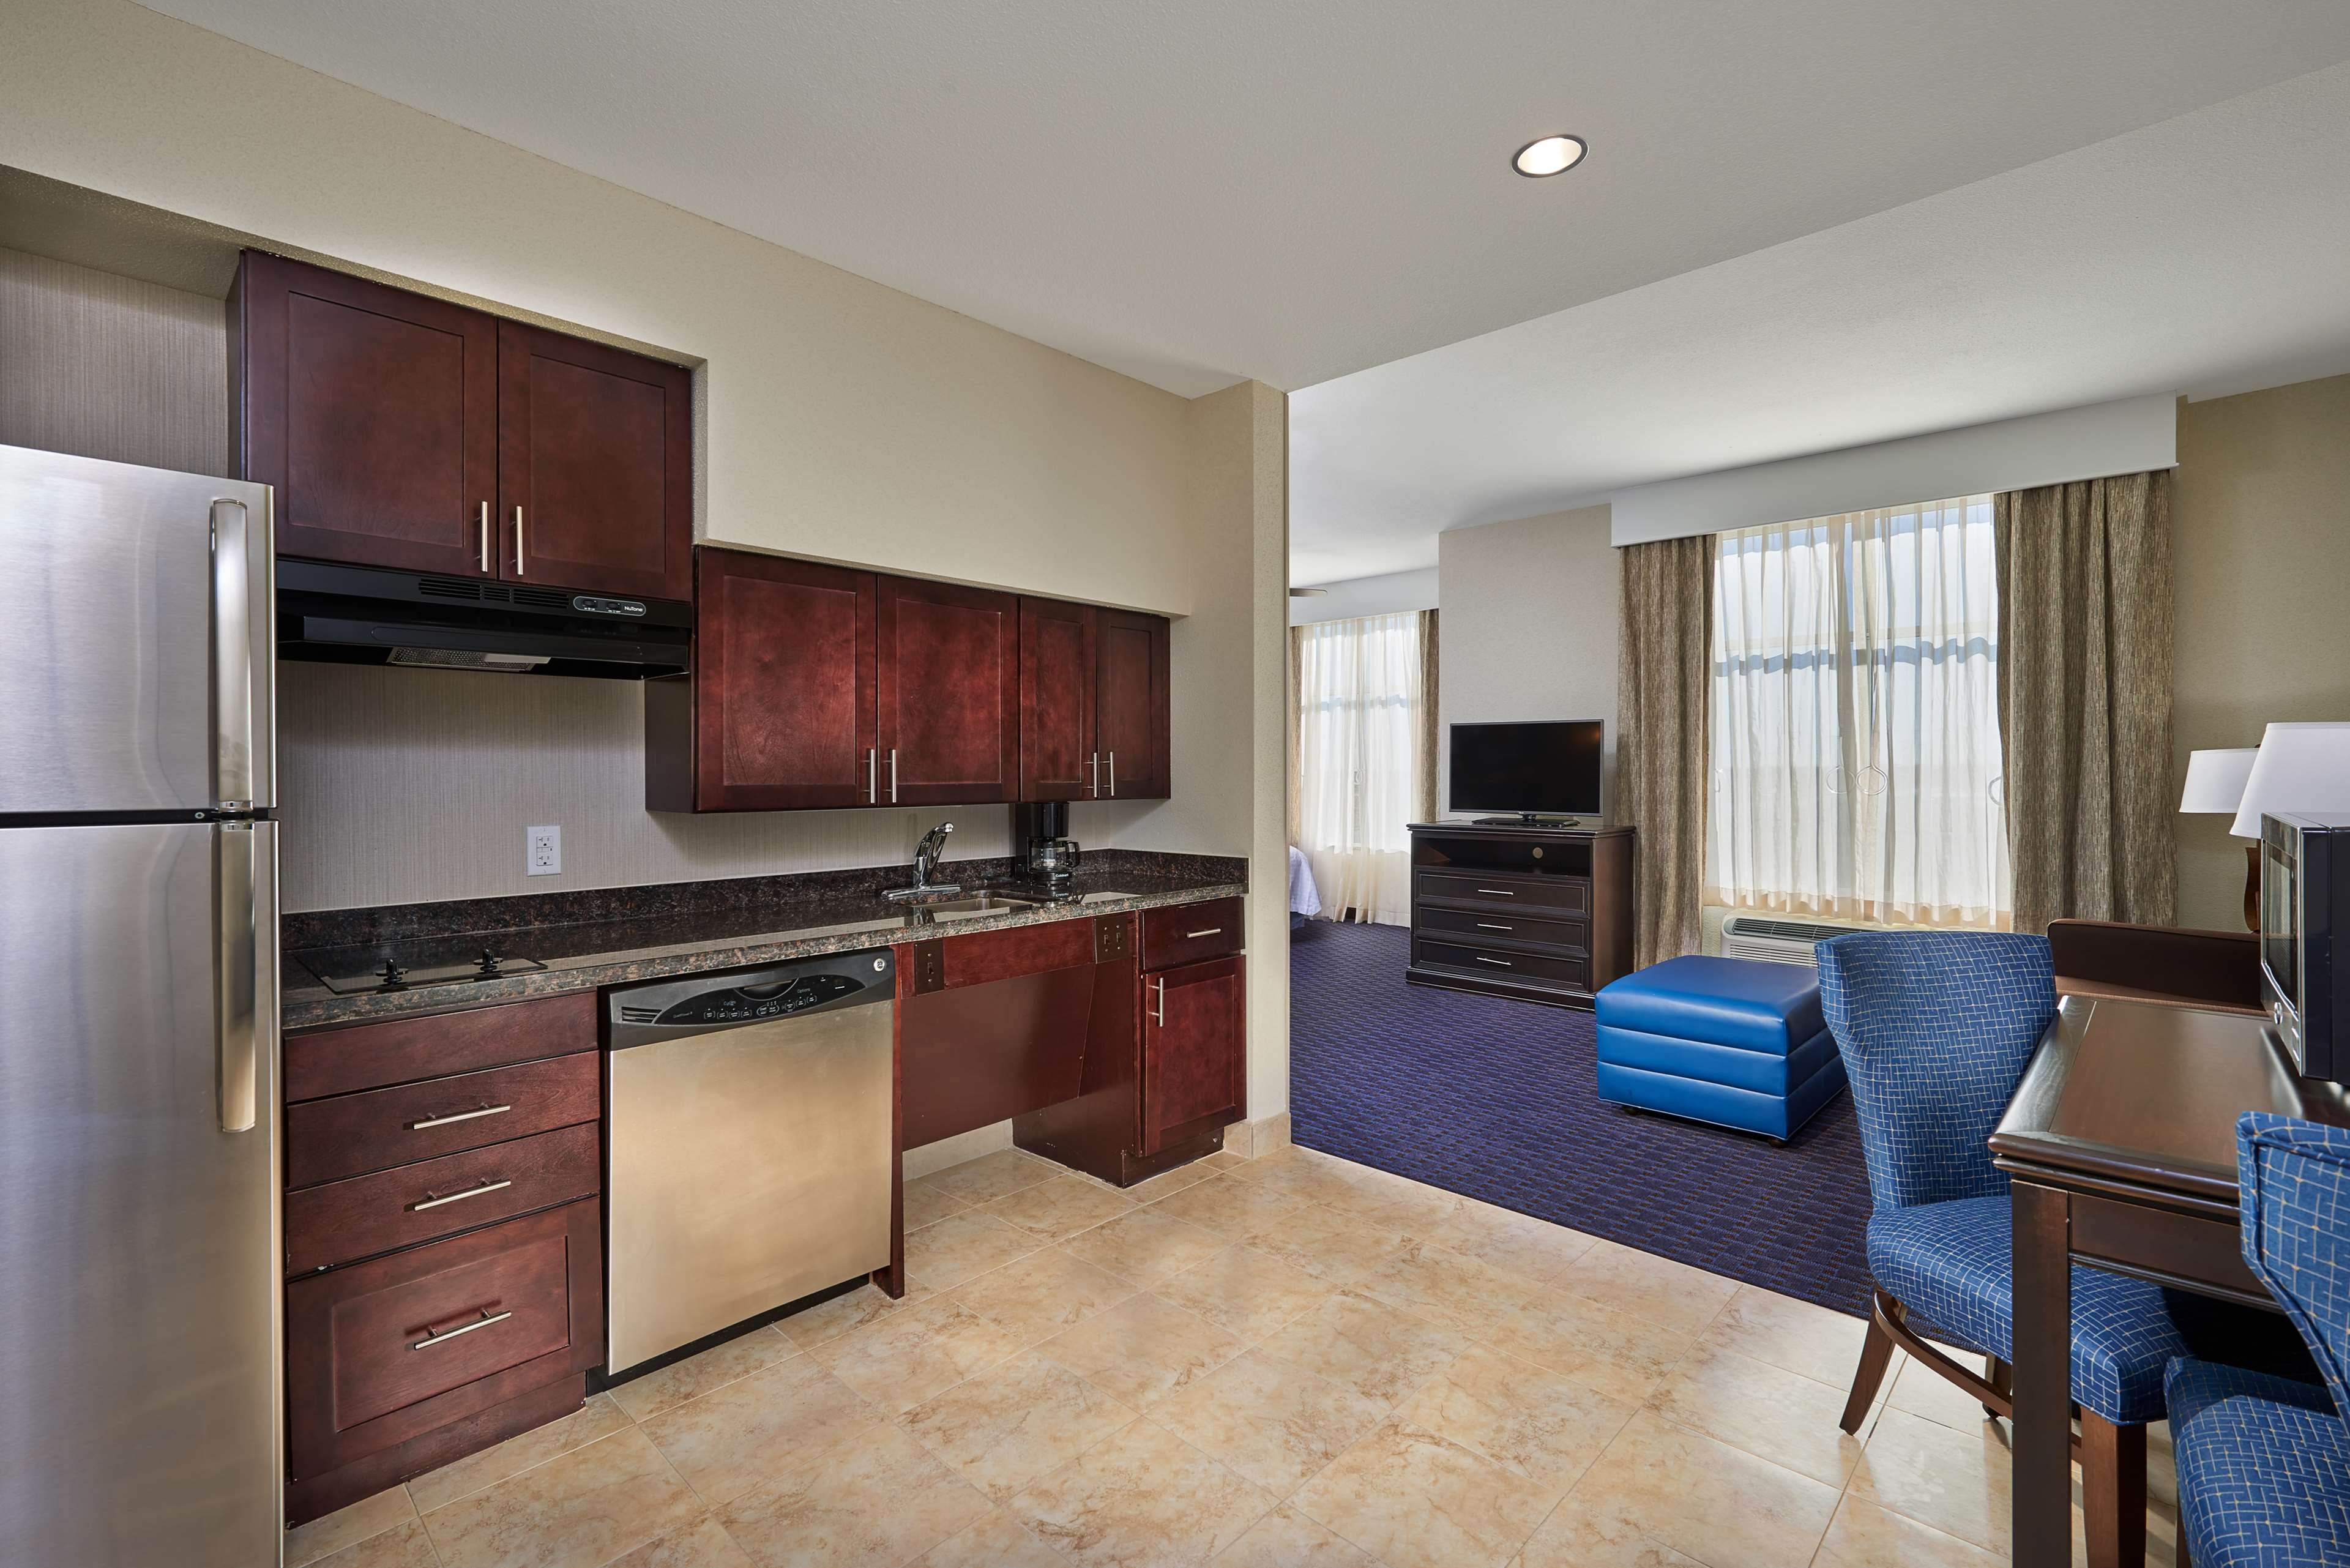 Homewood Suites by Hilton Odessa image 11